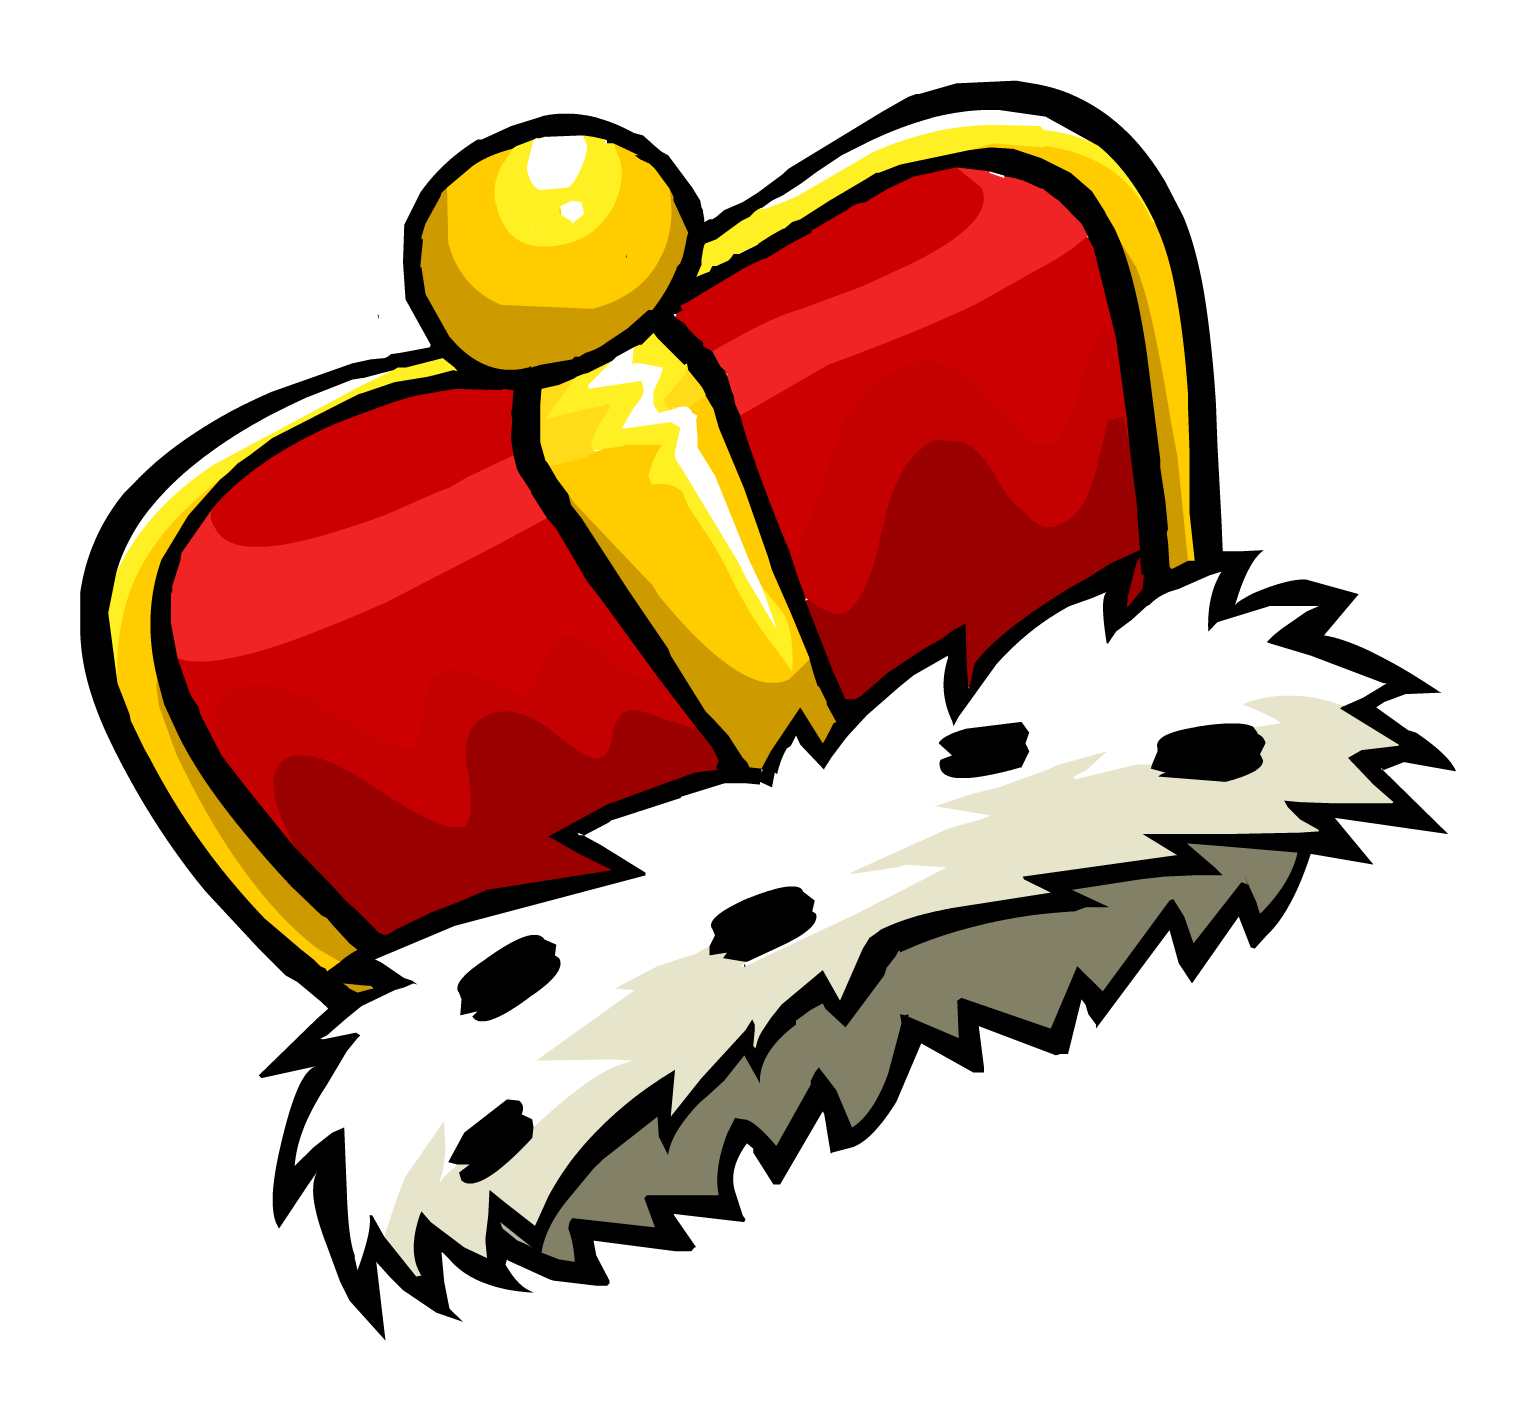 Crown emoji clipart clip art royalty free library Image - King's Crown Pin.PNG | Club Penguin Wiki | FANDOM powered by ... clip art royalty free library